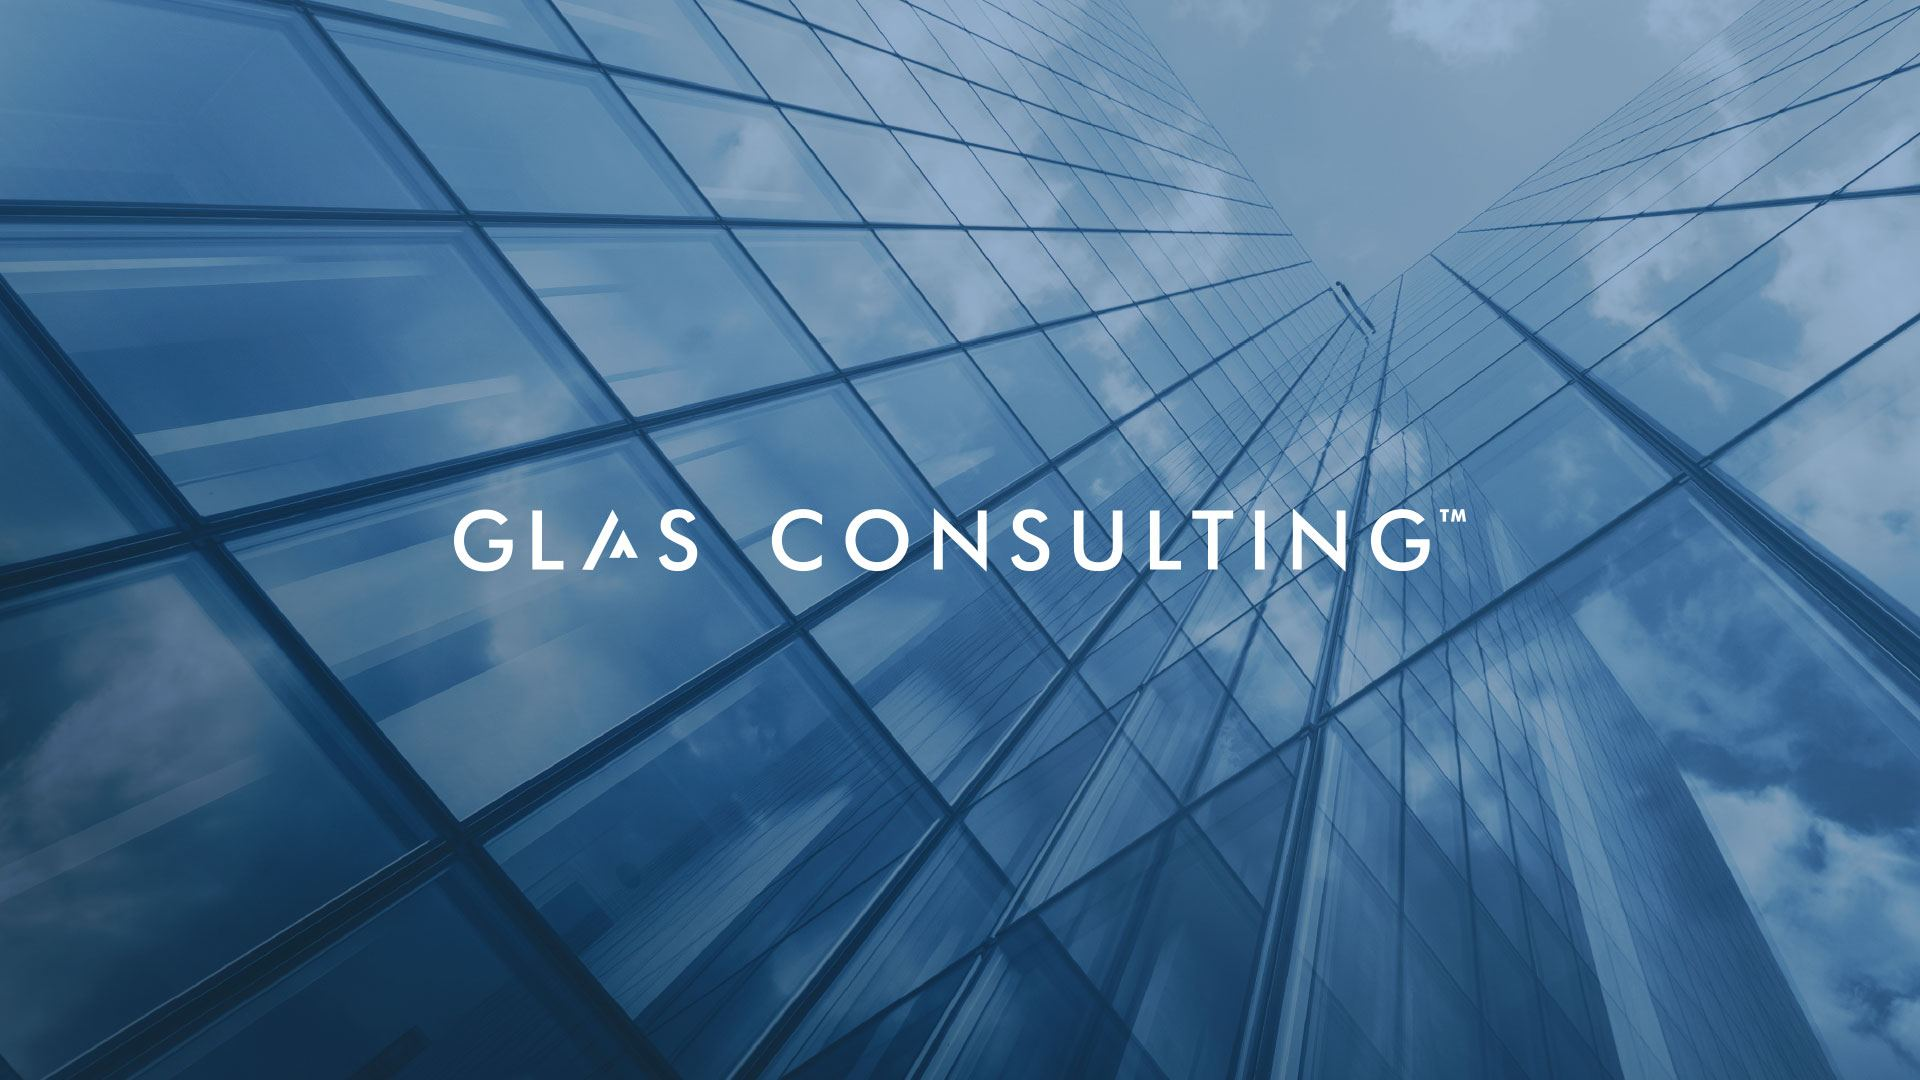 Glas Consulting brand